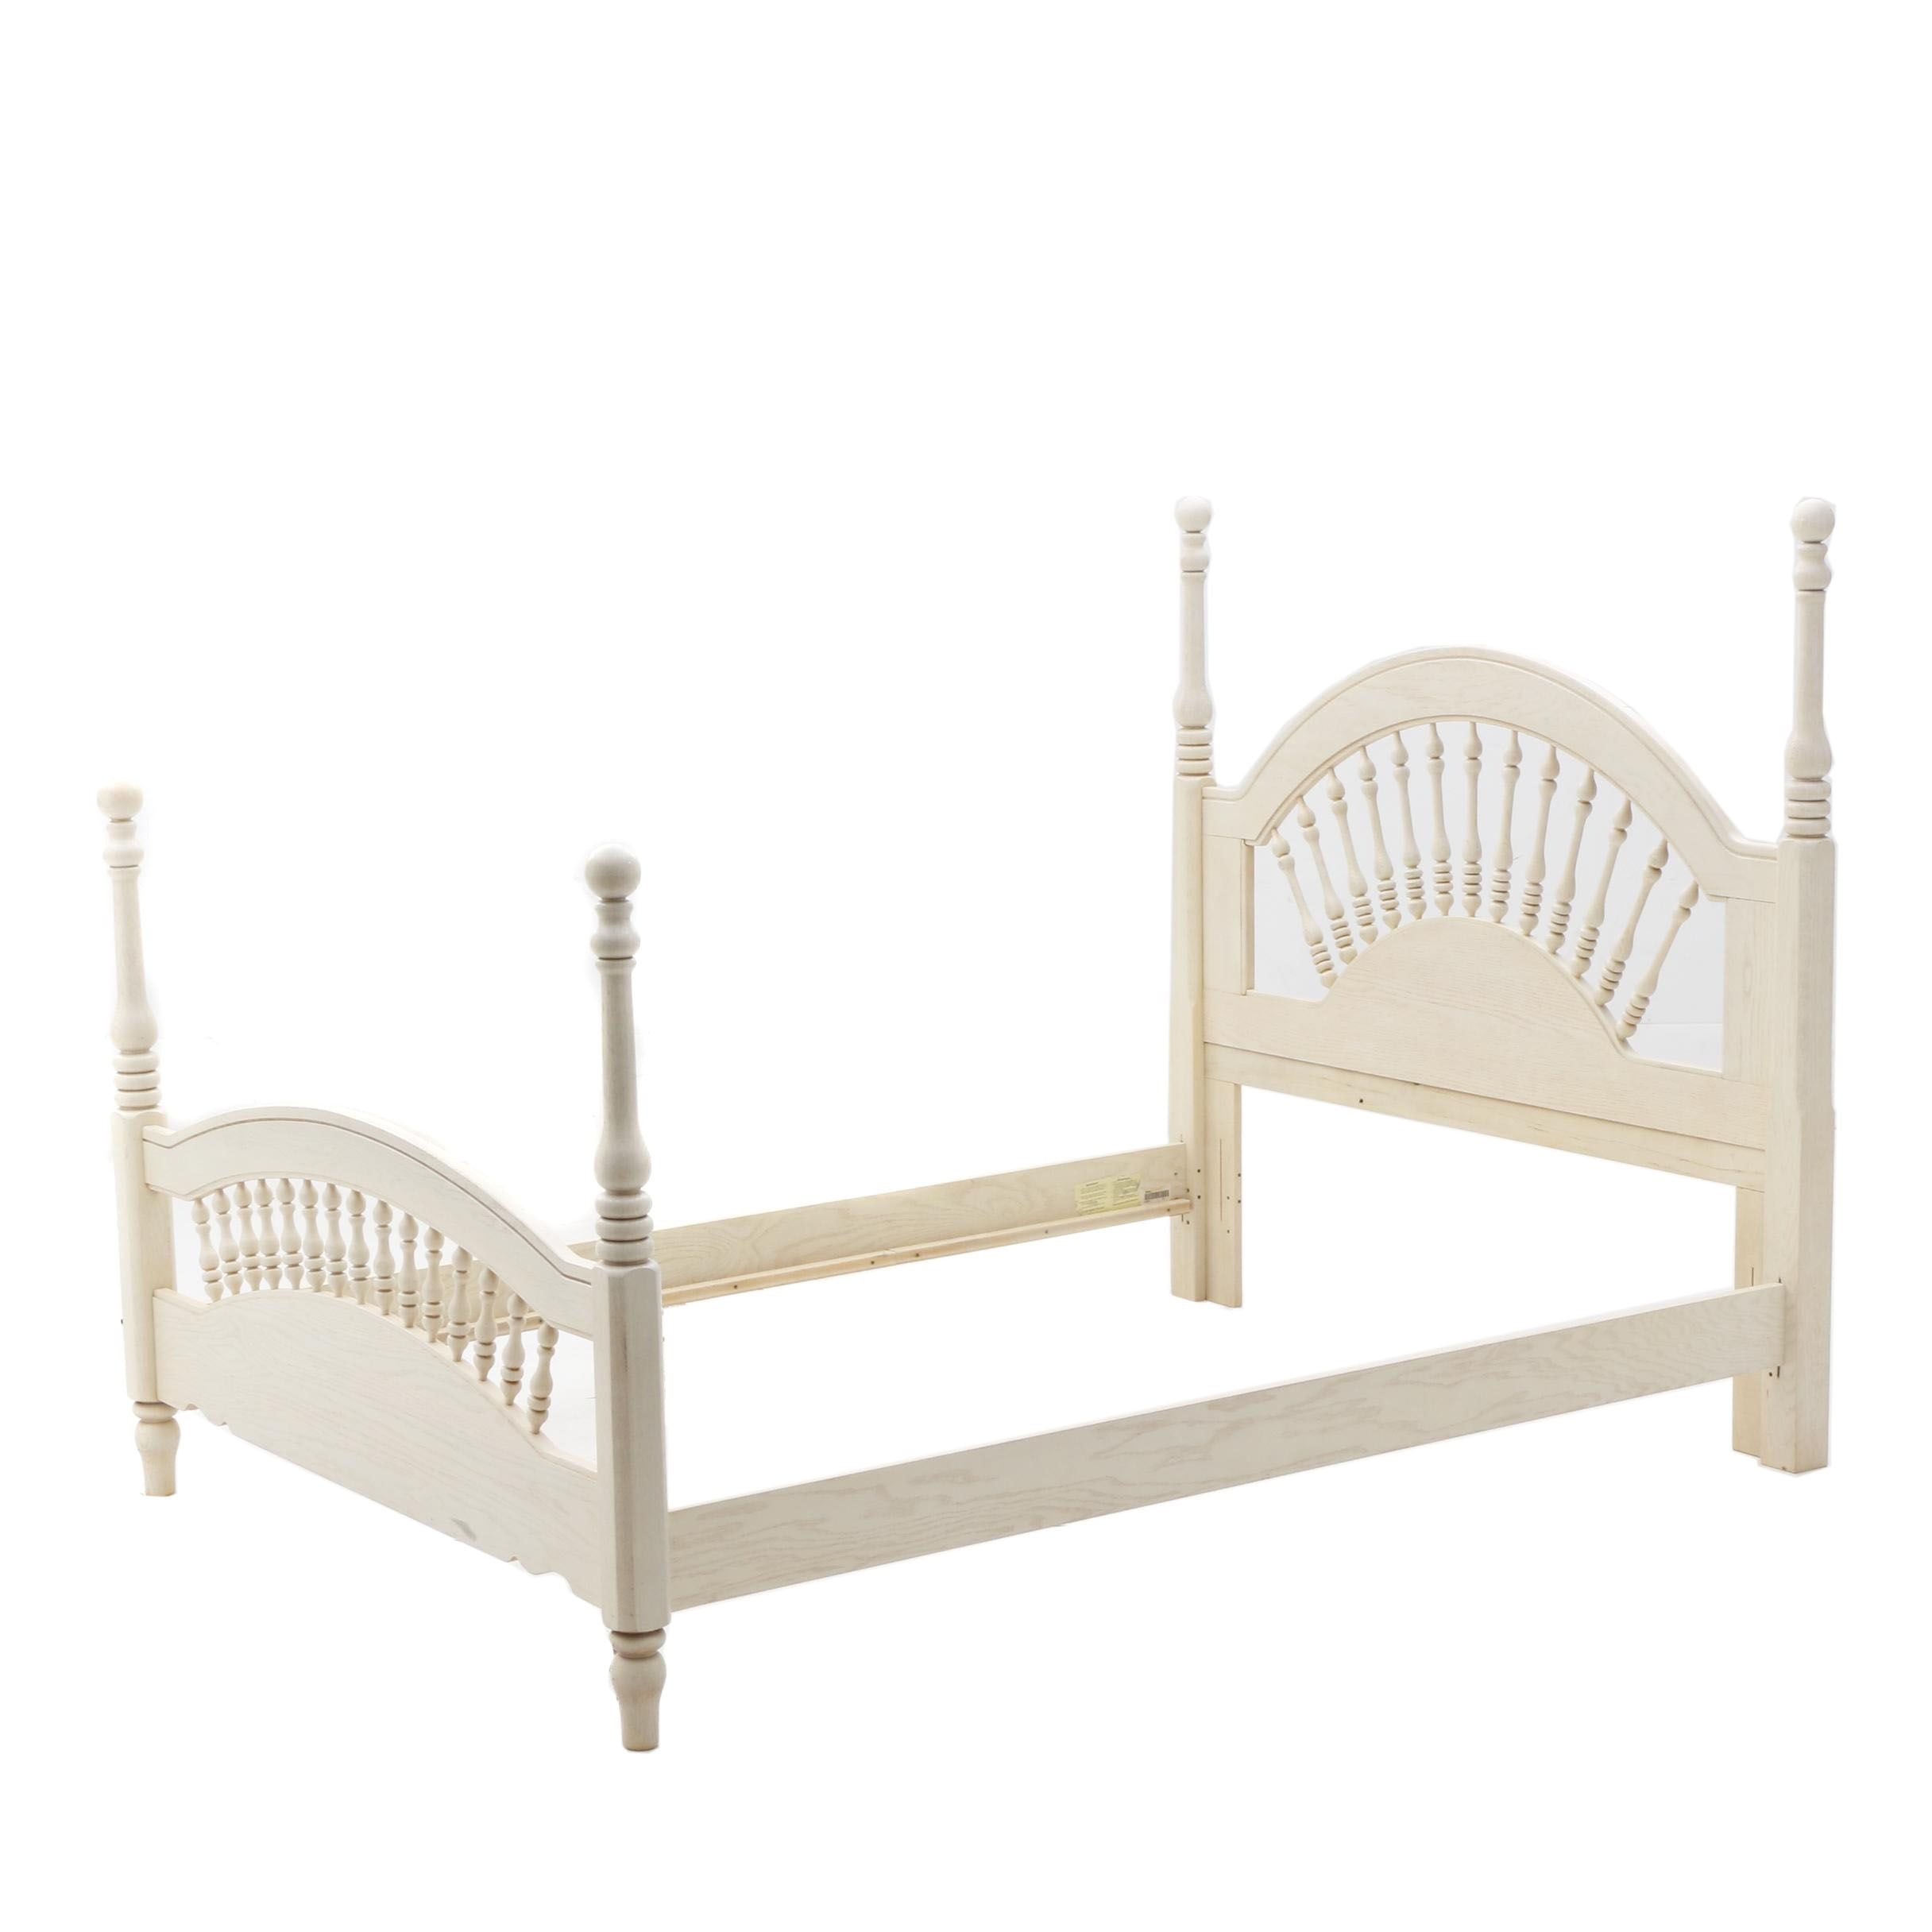 Lexington Queen Size Bed Frame in Antiqued White Finish